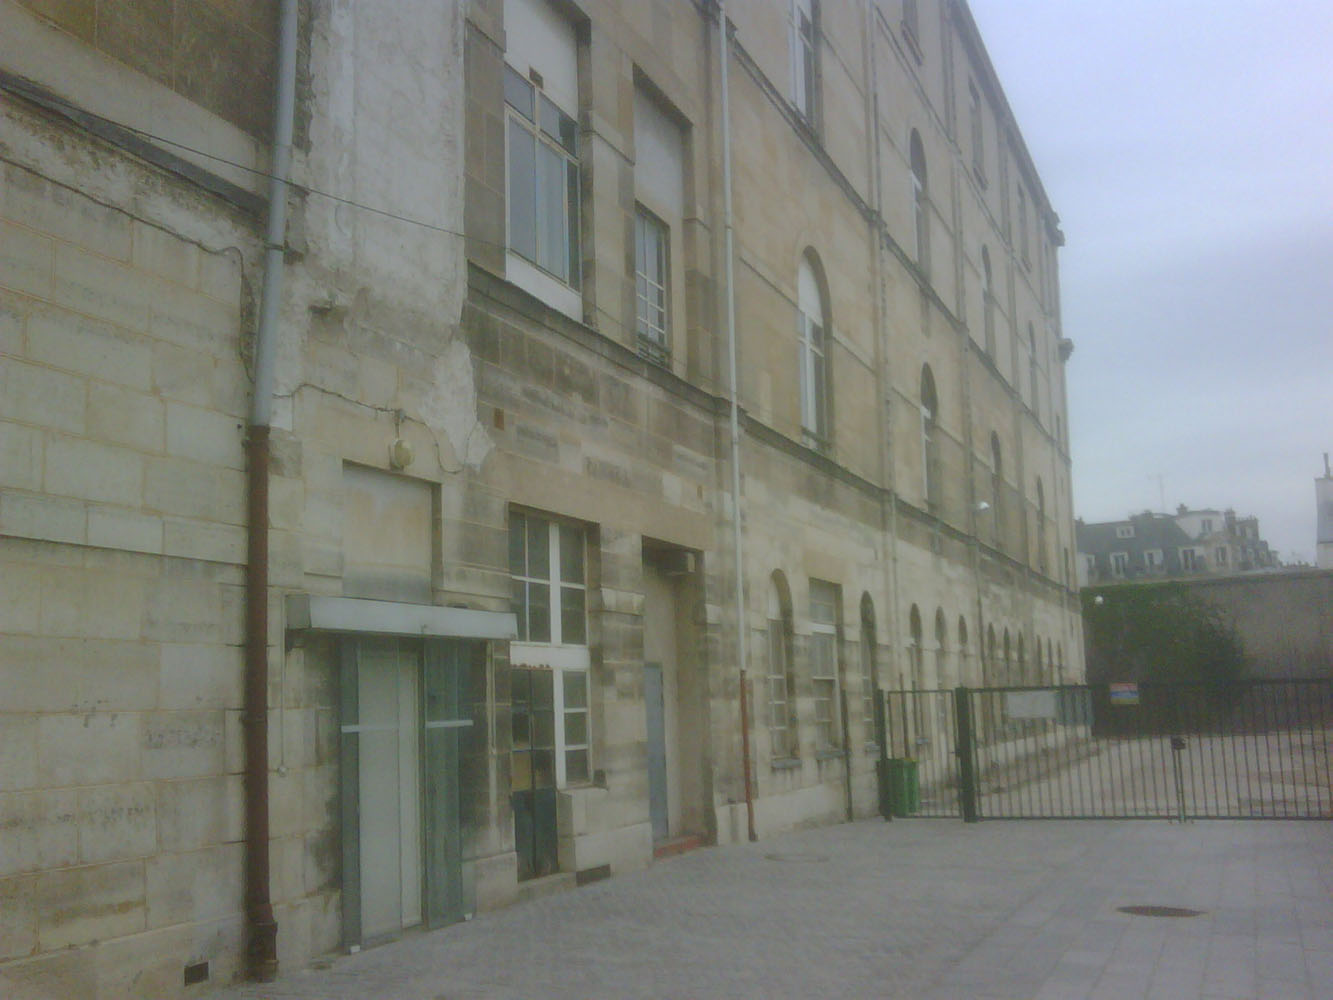 Prison Saint-Lazare, exterior view, infirmary wing, prison wall